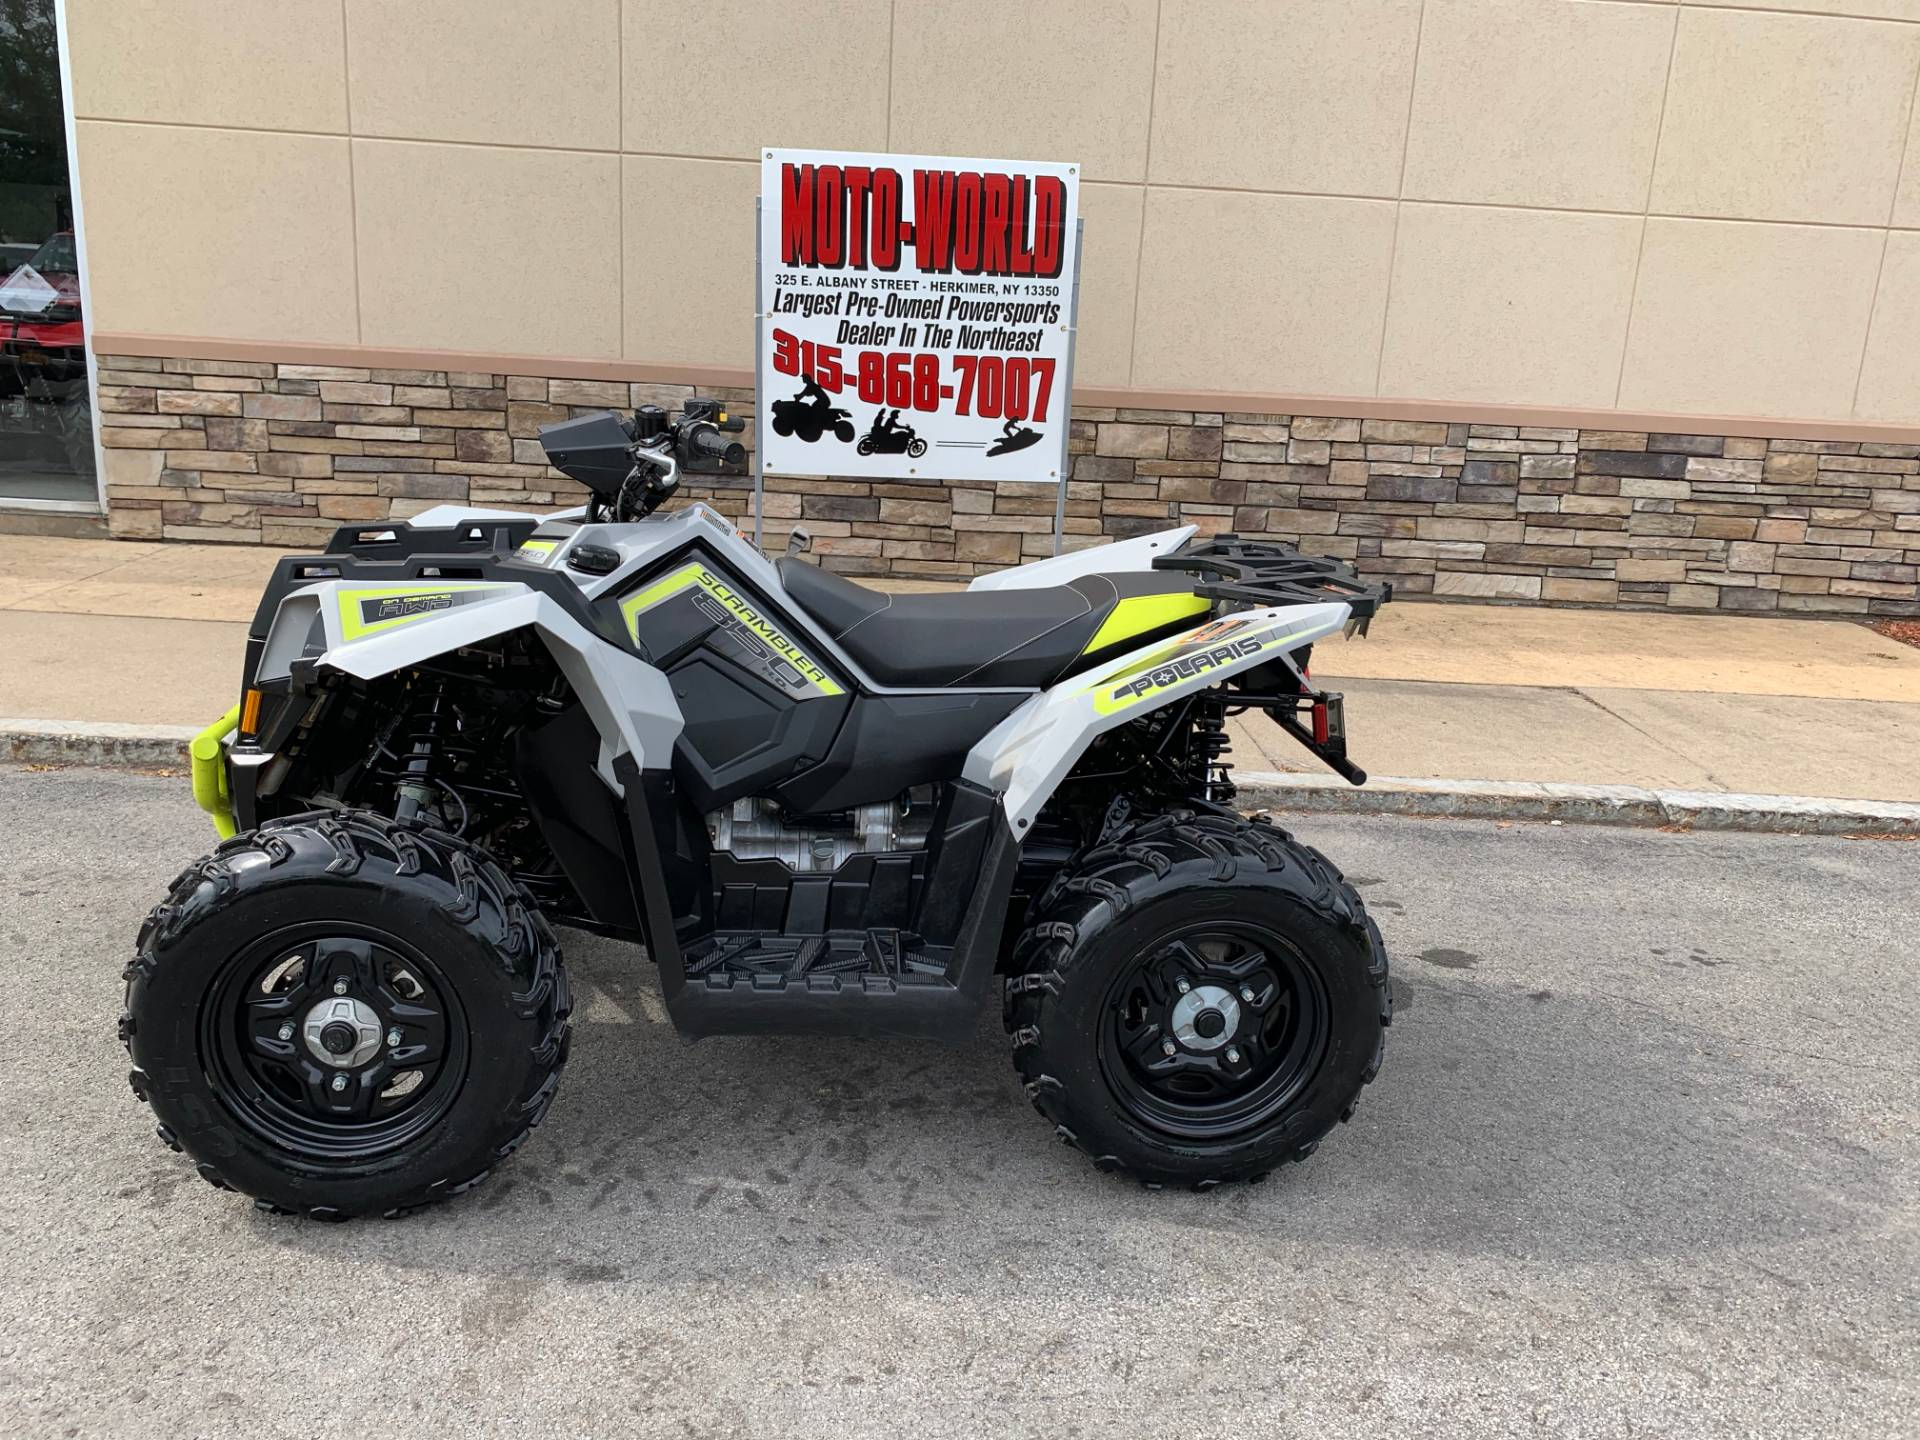 2019 Polaris Scrambler 850 in Herkimer, New York - Photo 1